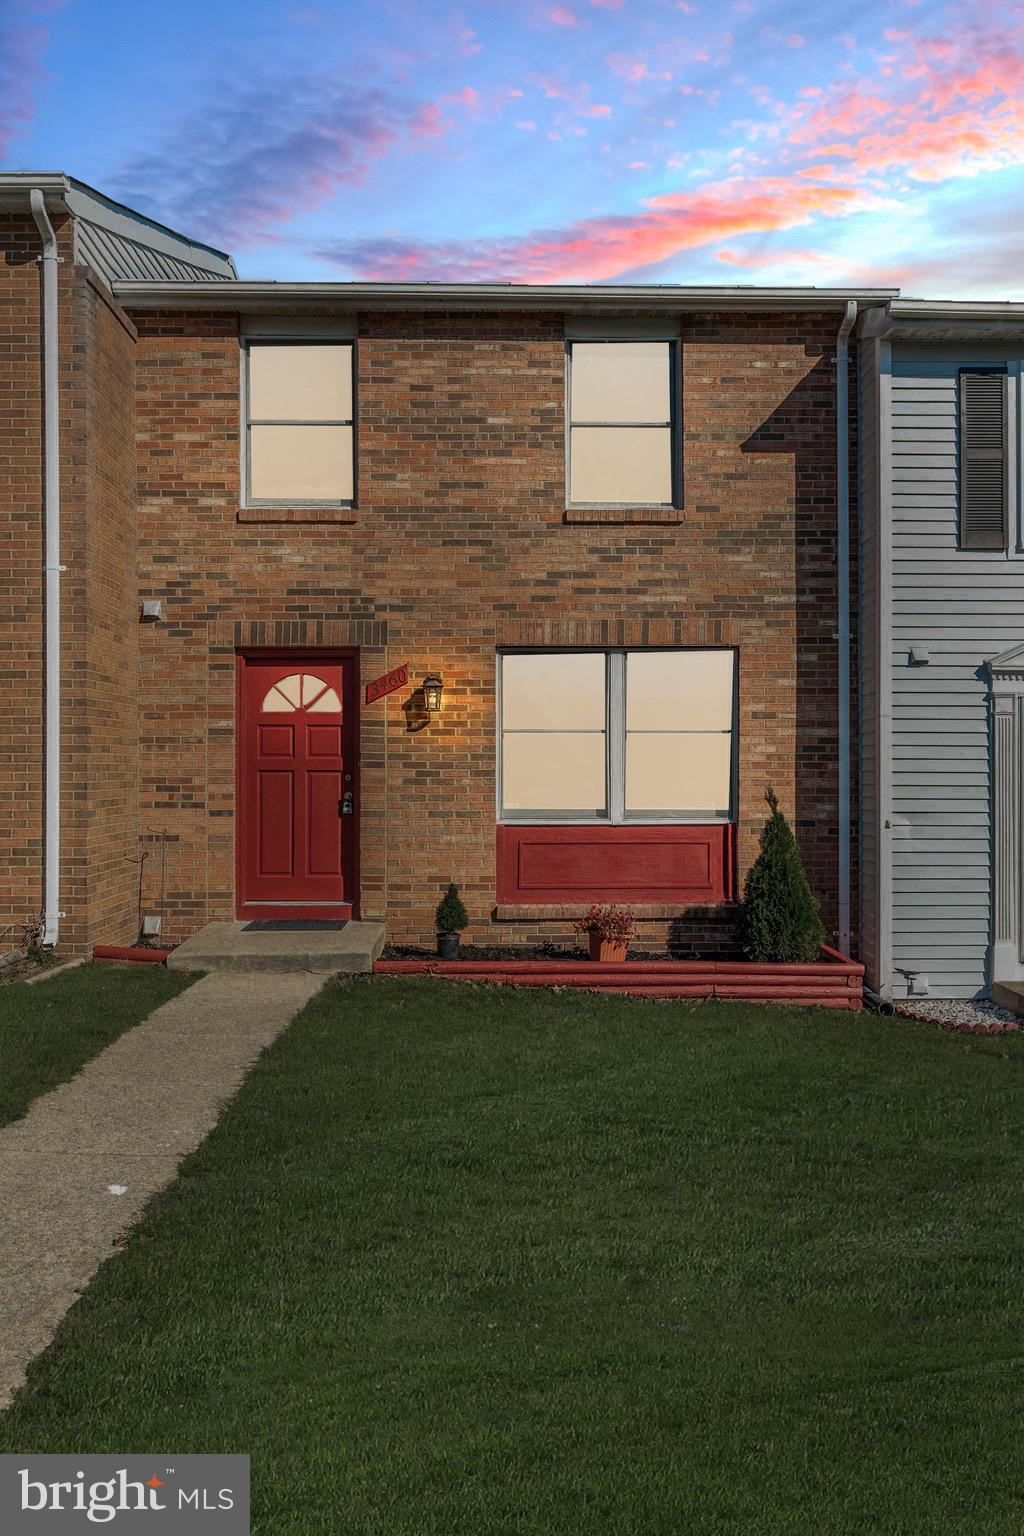 Fabulous renovated townhouse in sought after Lake Ridge. This home has been renovated top-to-bottom